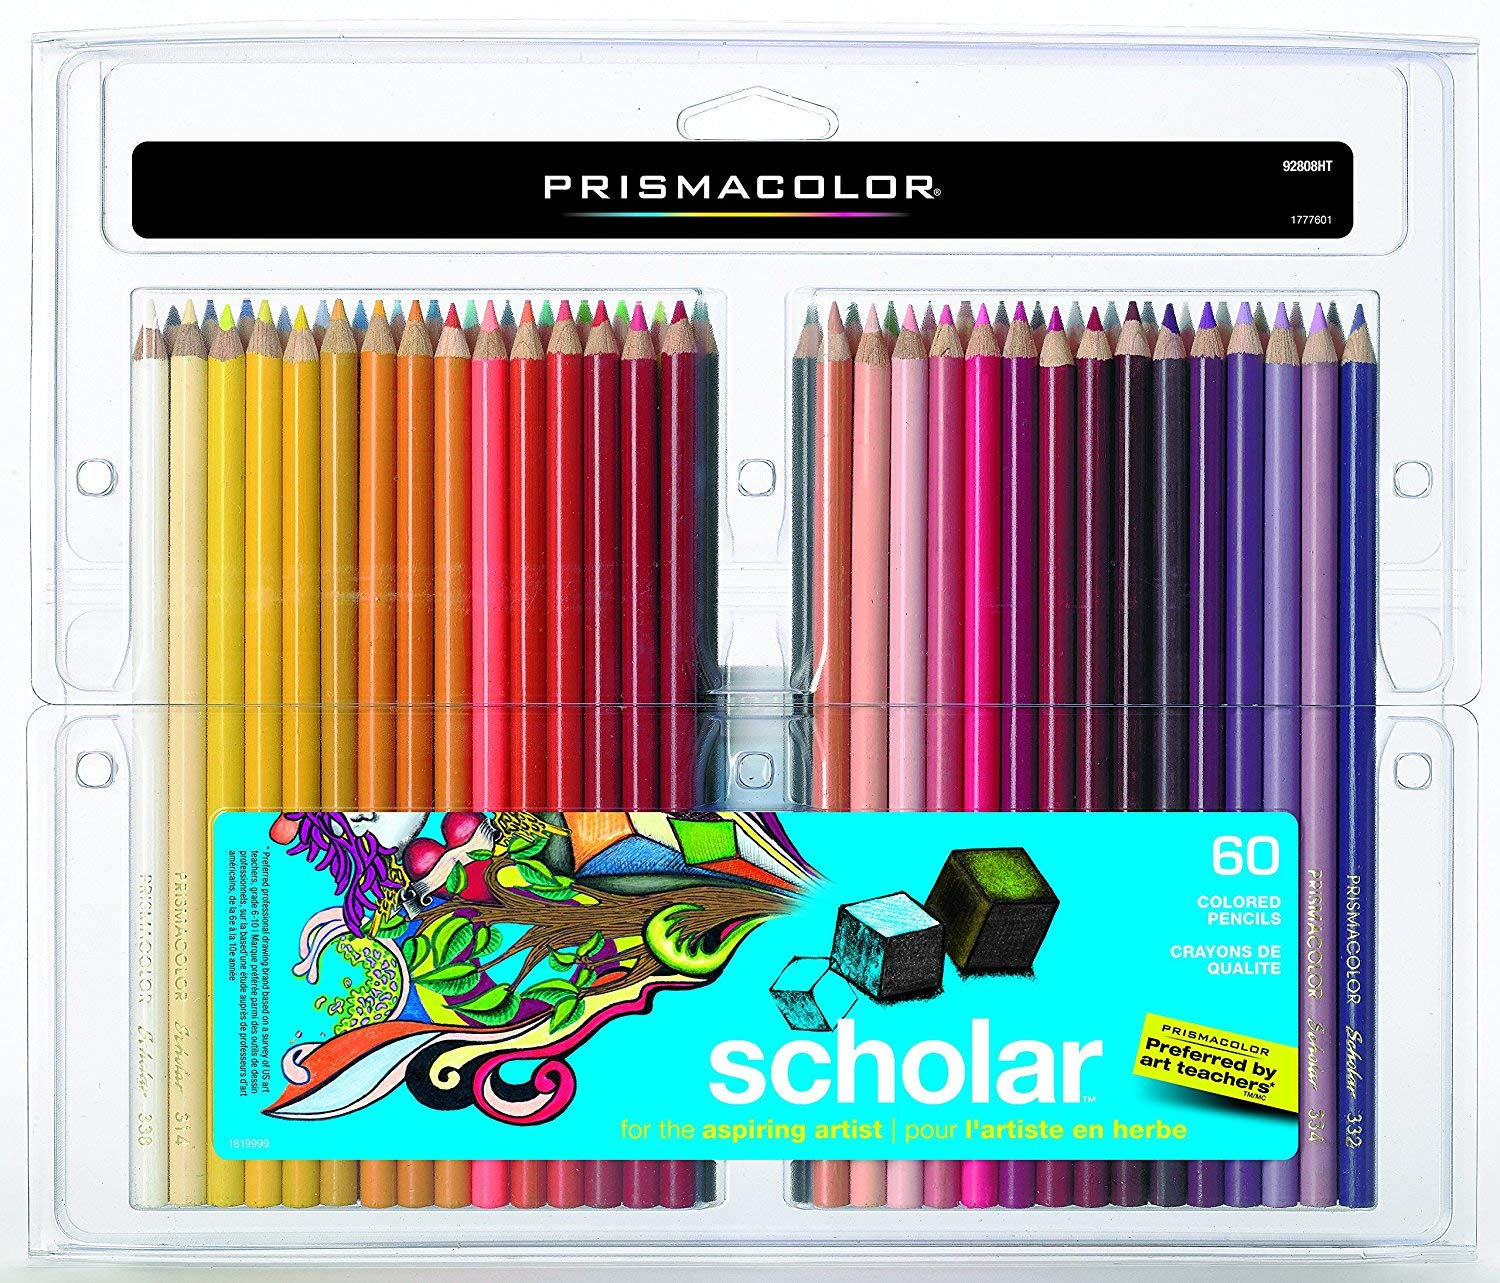 Prismacolor 92808HT Scholar 60 (1 Pack of 60 Pencils) Colored Pencils; Soft, Smooth Leads Ideal for Blending and Shading; Hardened Cores Resist Breakage; Rich, Vibrantly Pigmented Colors Newell Rubbermaid 92808HT 1 Pack